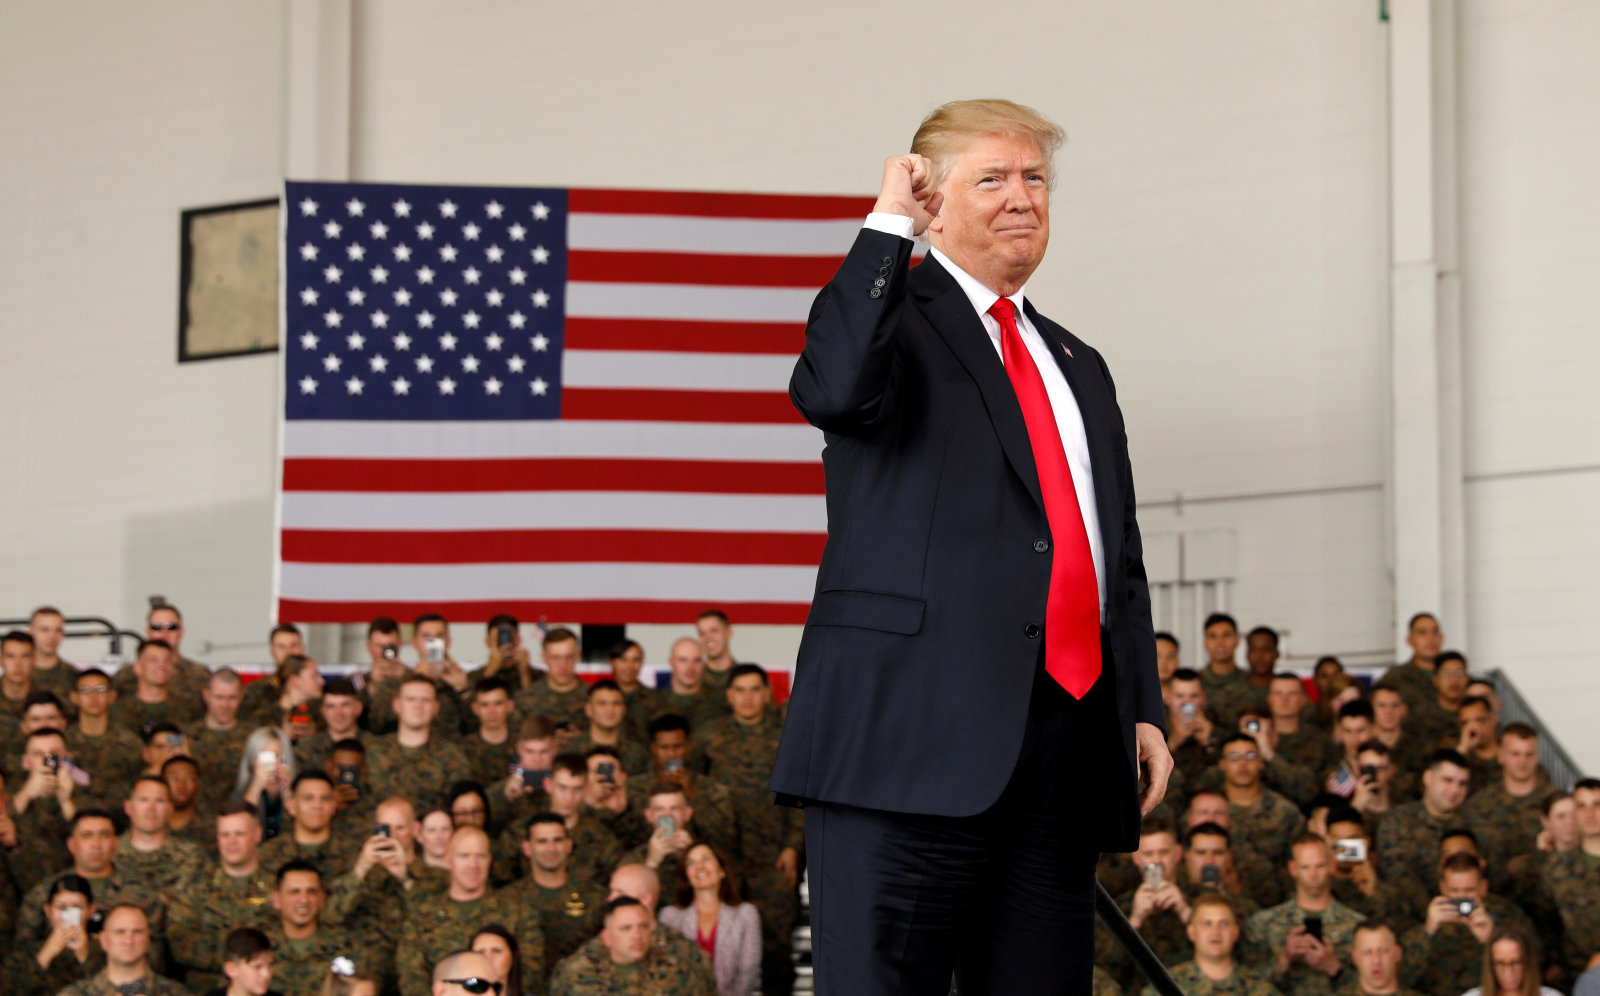 U.S. President Donald Trump pumps his fist after speaking at Marine Corps Air Station Miramar in San Diego, California, U.S. March 13, 2018. REUTERS/Kevin Lamarque     TPX IMAGES OF THE DAY